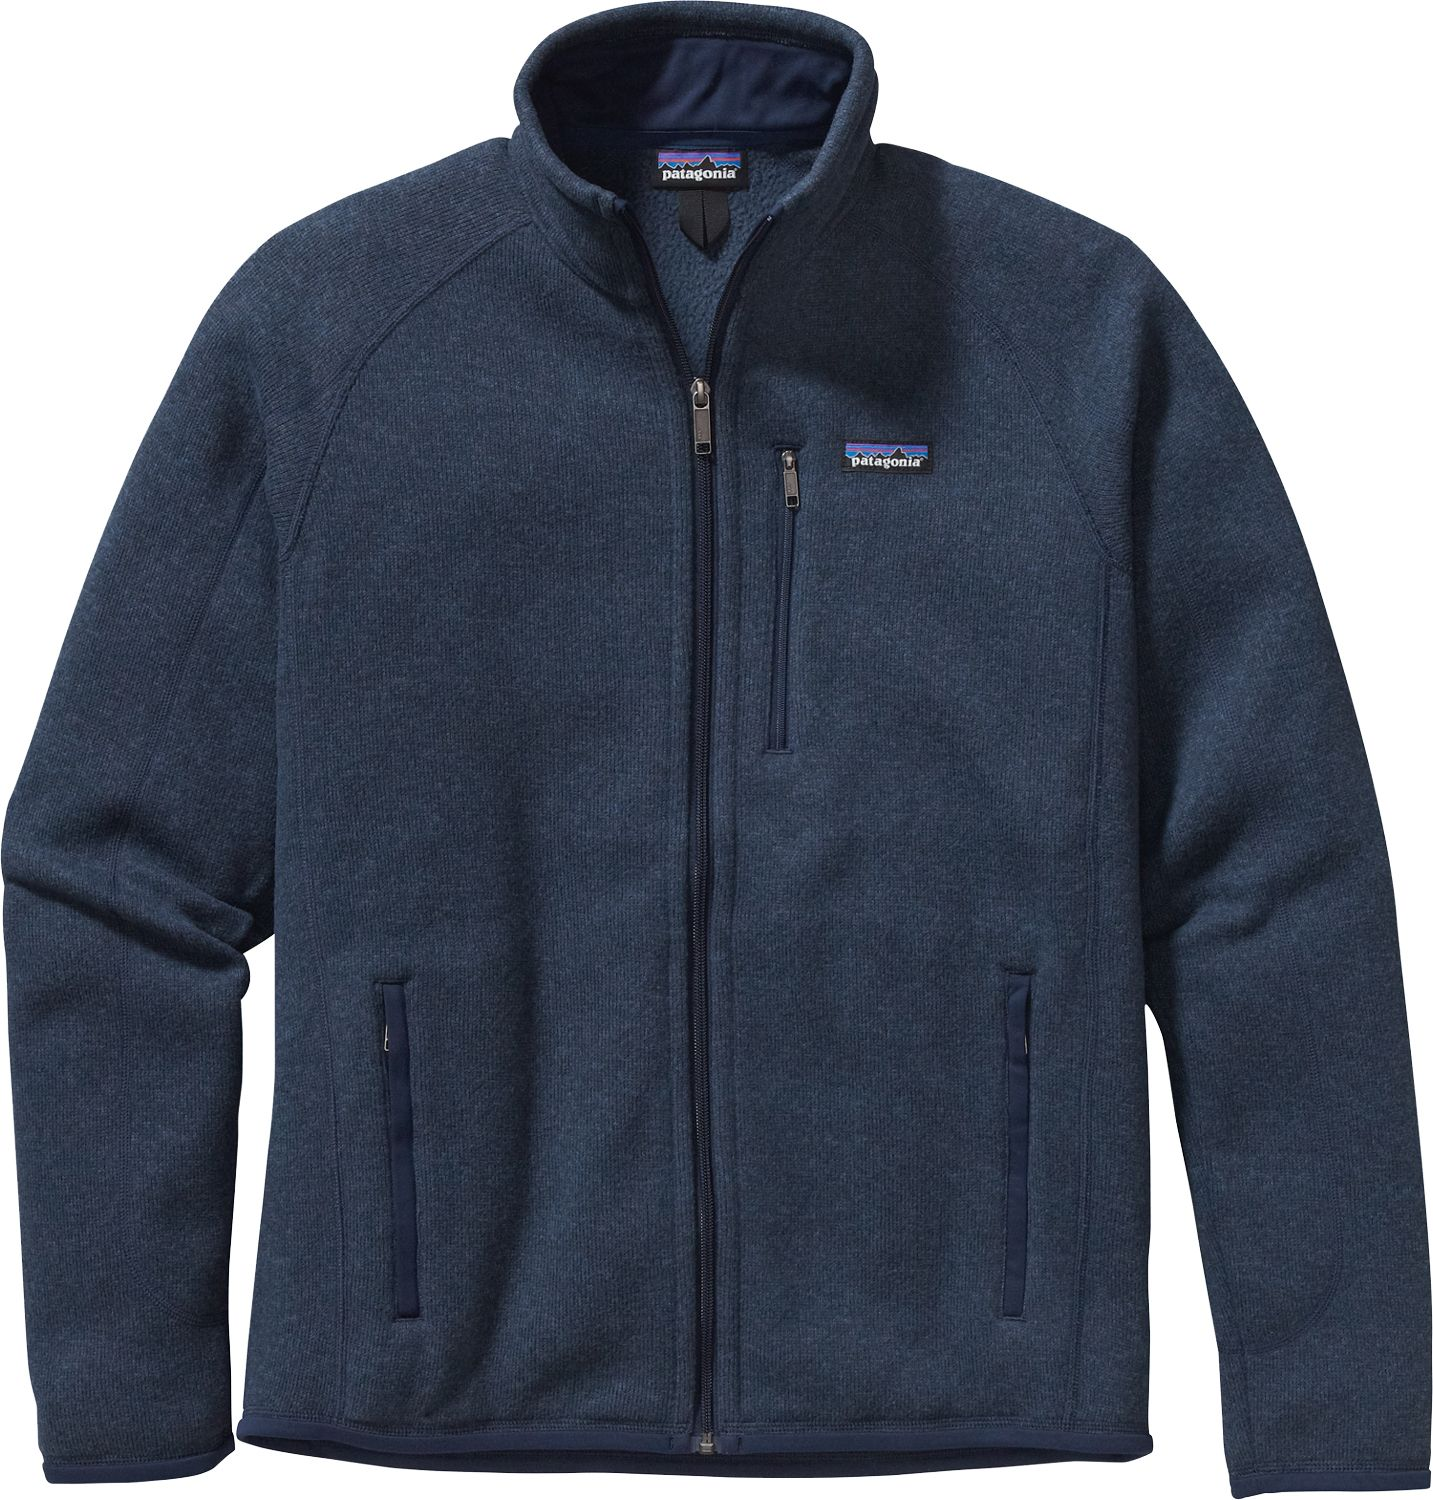 40d4e2a4 Patagonia Men's Better Sweater Fleece Jacket | Products | Patagonia ...